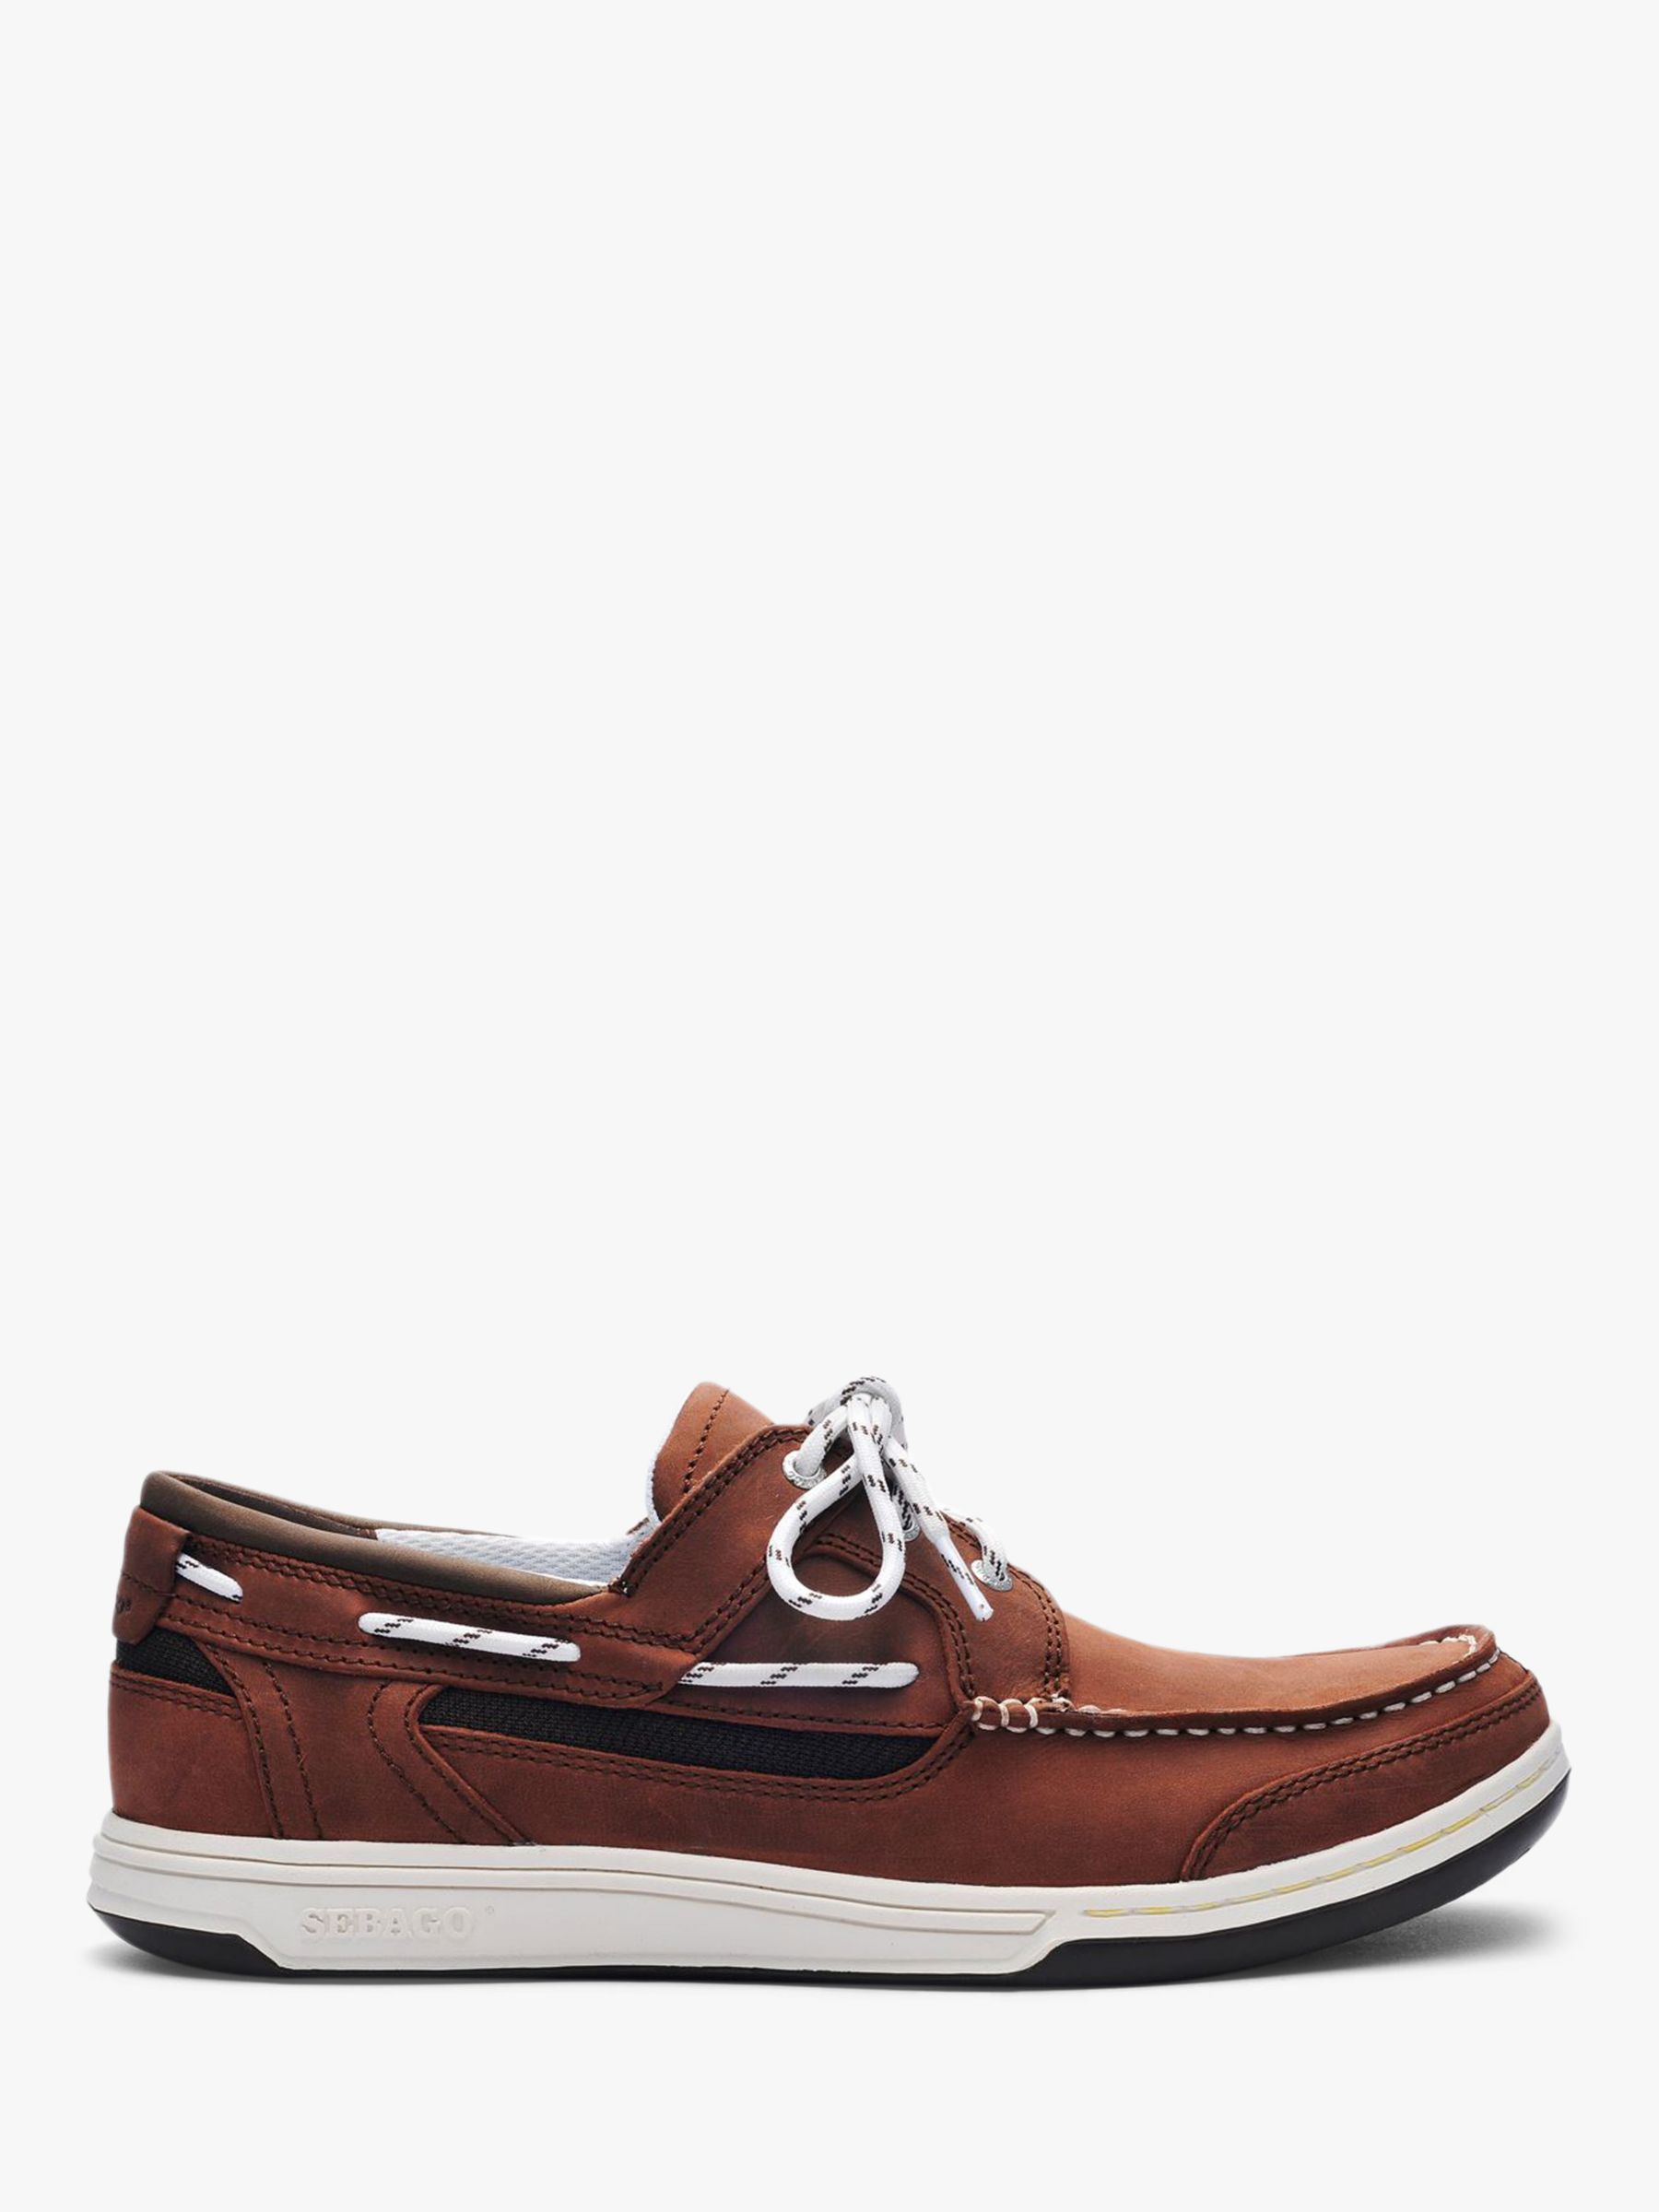 Sebago Sebago Triton 3-Eyelet Leather Boat Shoes, Dark Brown